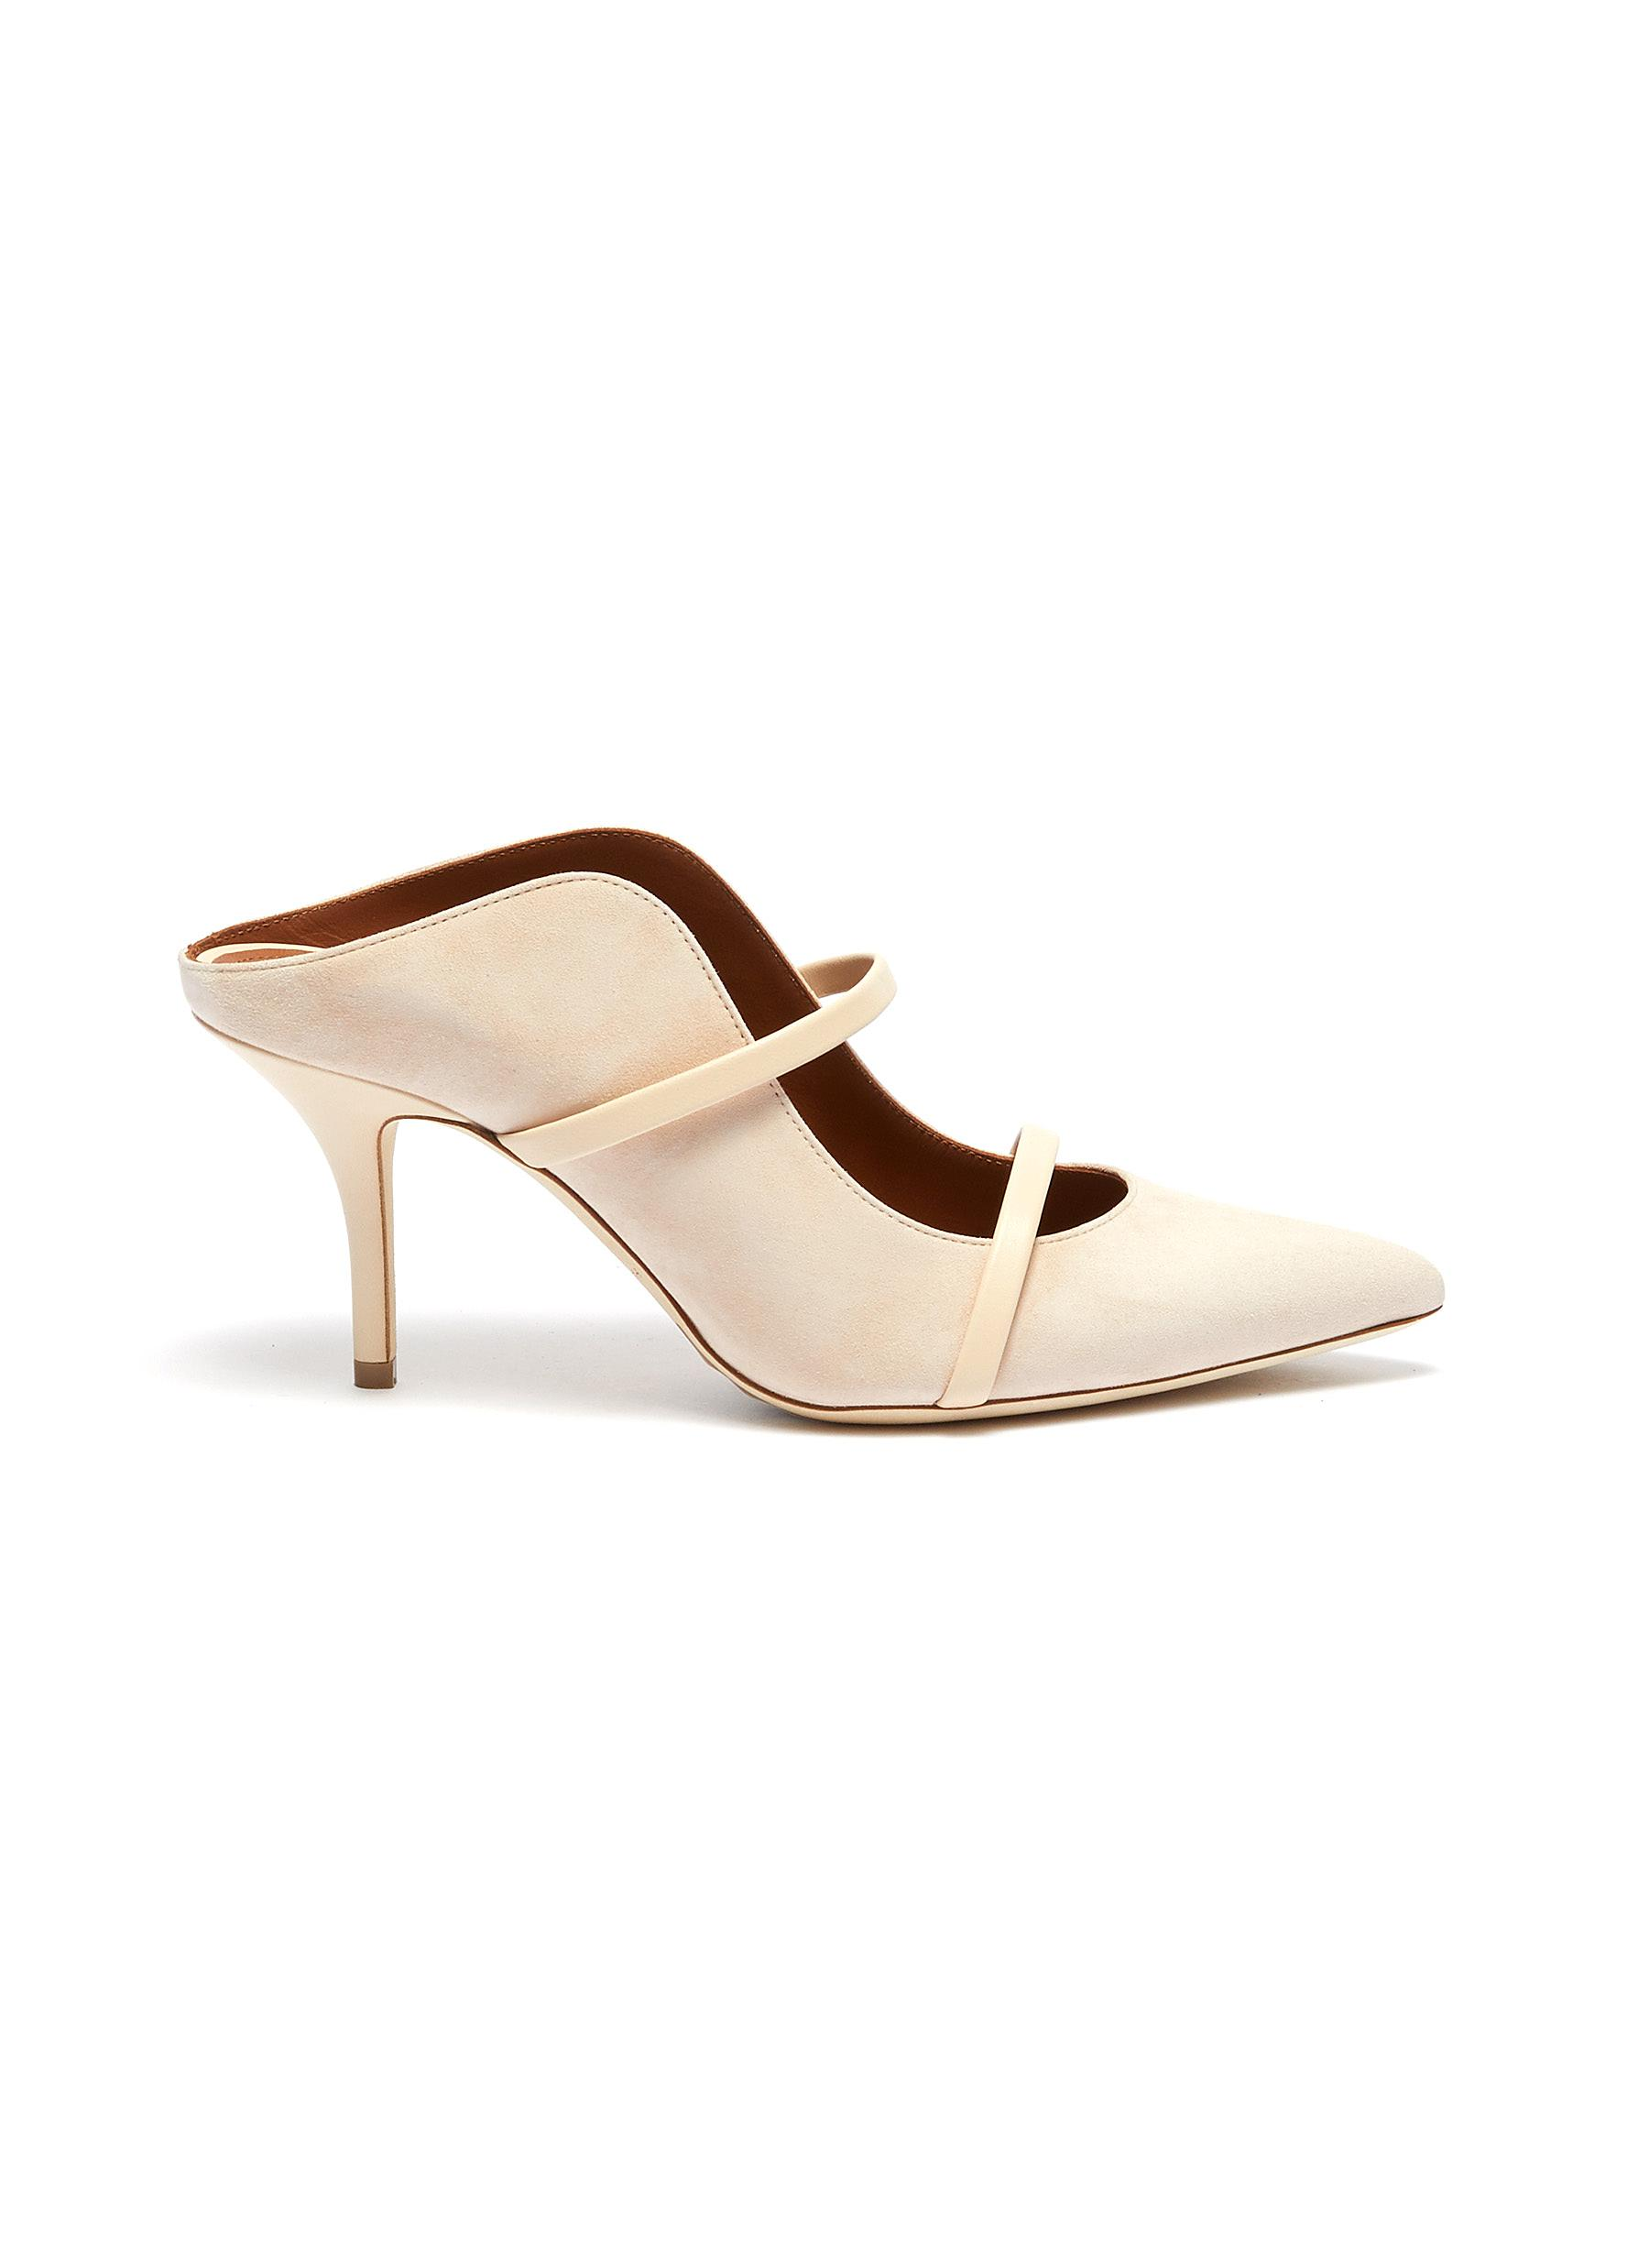 Maureen strappy suede mules by Malone Souliers